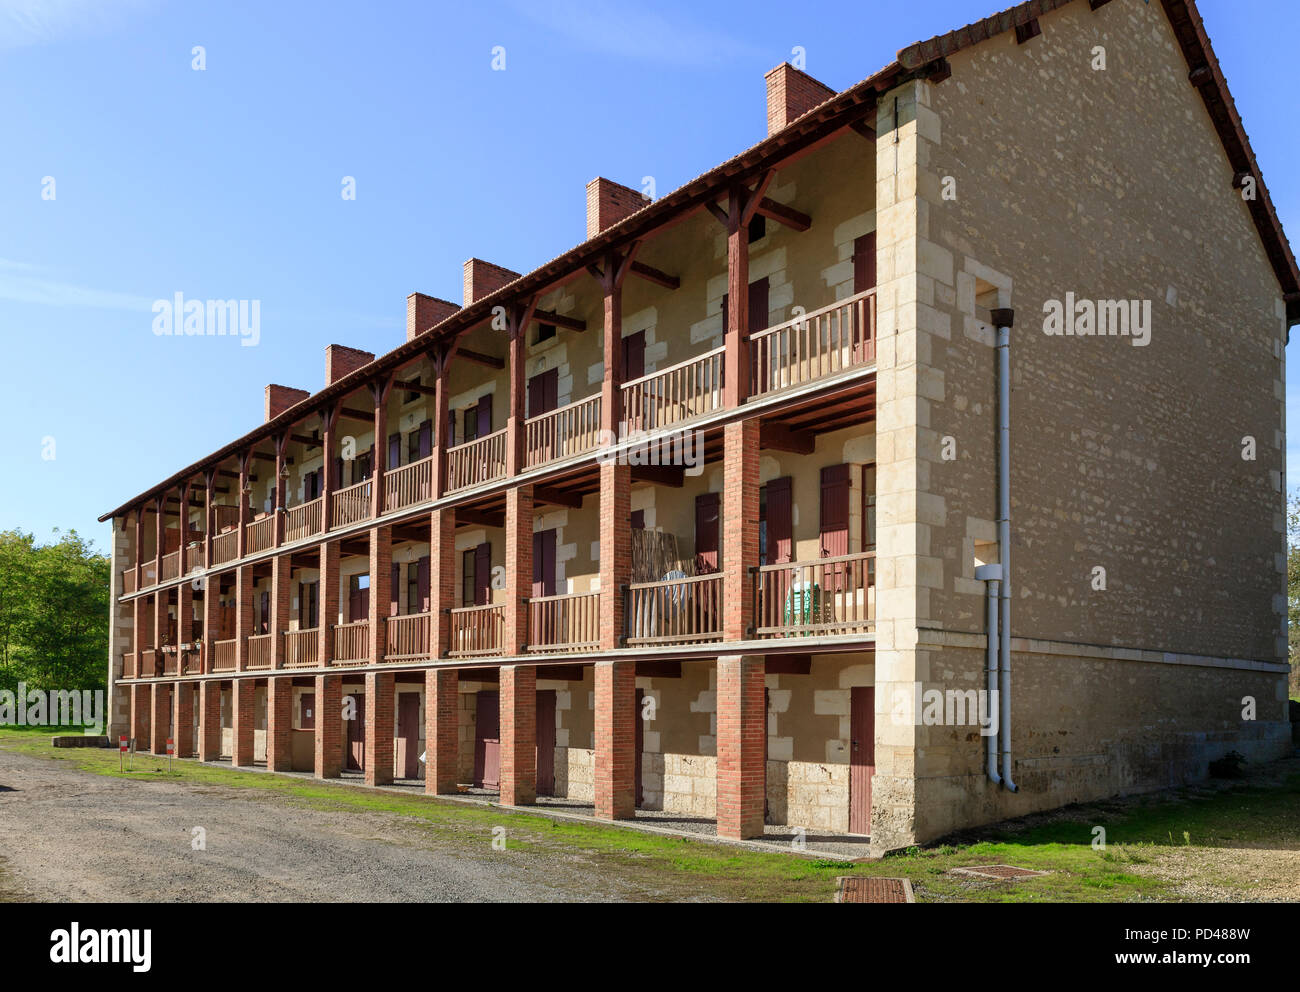 France, Cher, Berry, Grossouvre, Les Galleries building, labor housing of the 19th century // France, Cher (18), Berry, Grossouvre, immeuble Les Galer - Stock Image